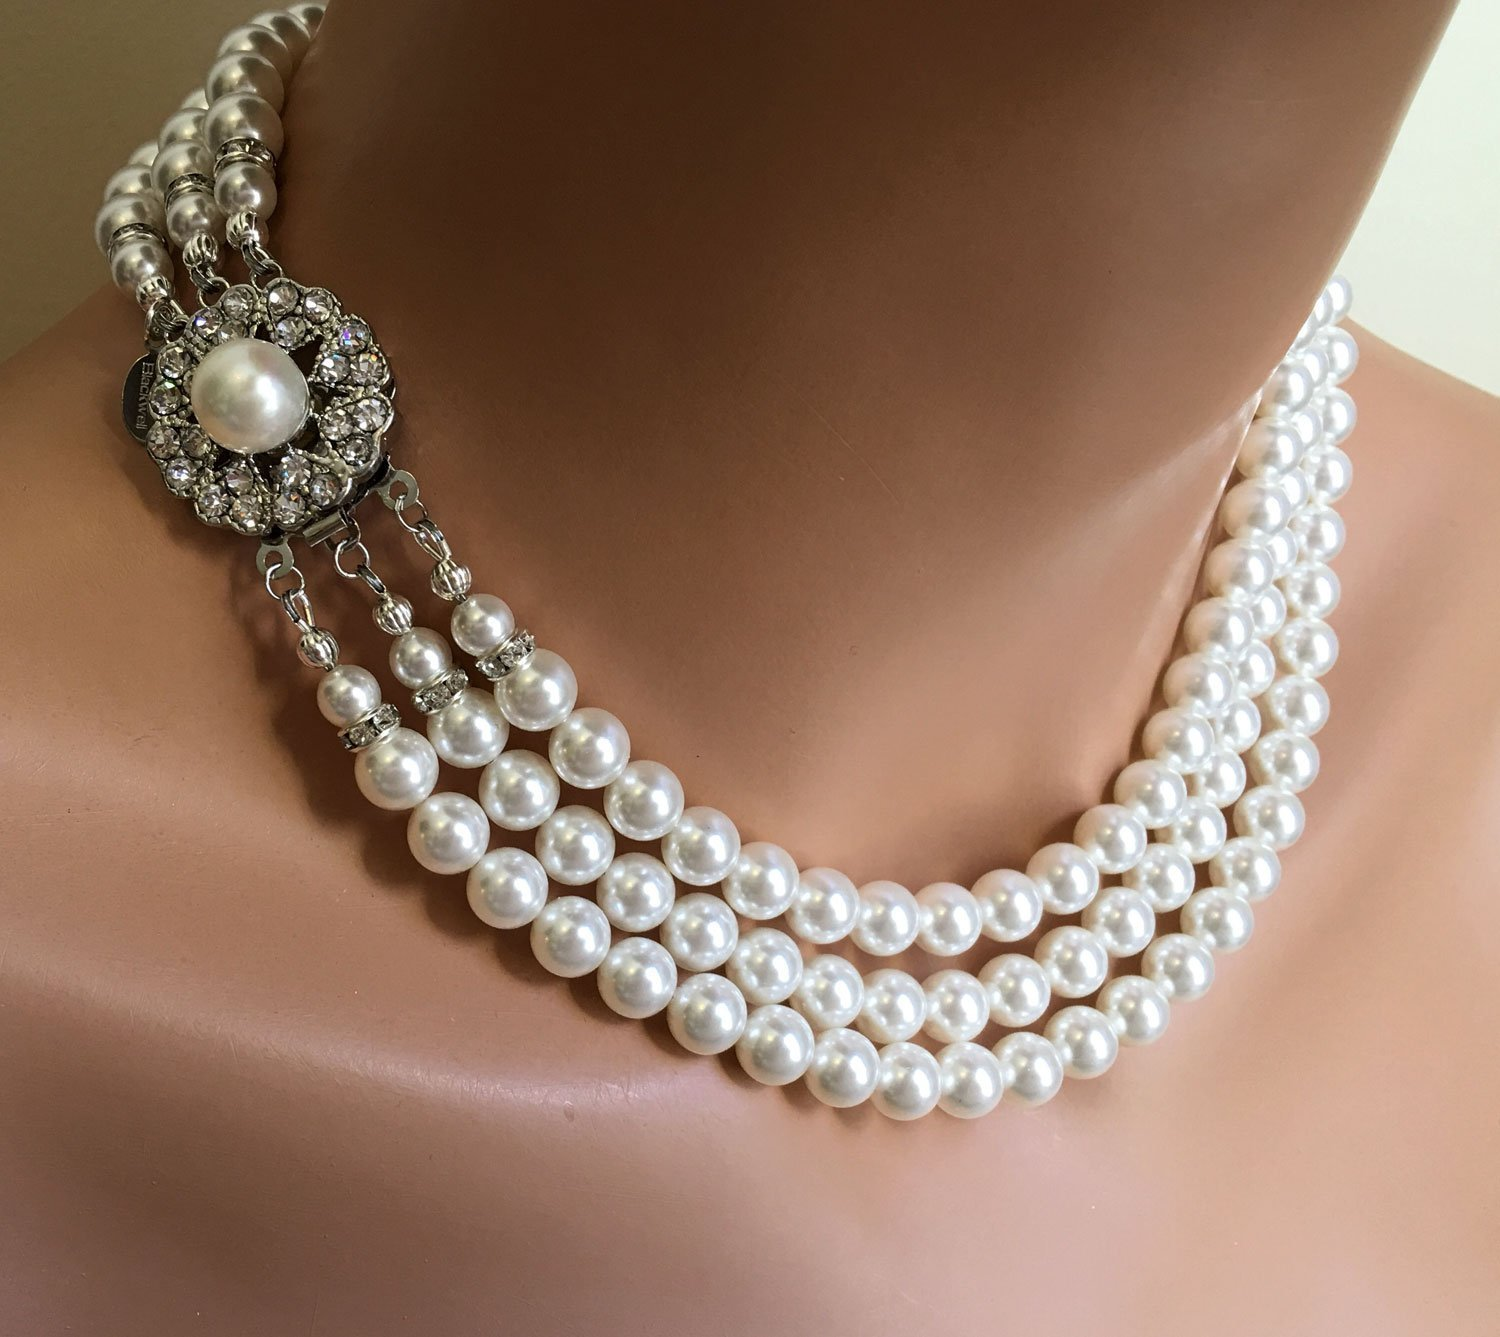 Classic Pearl Necklace Set Vintage style like Jackie O Earrings included  with Fancy Rhinestone Clasp multistrand Swarovski pearls White or Cream  Ivory ...